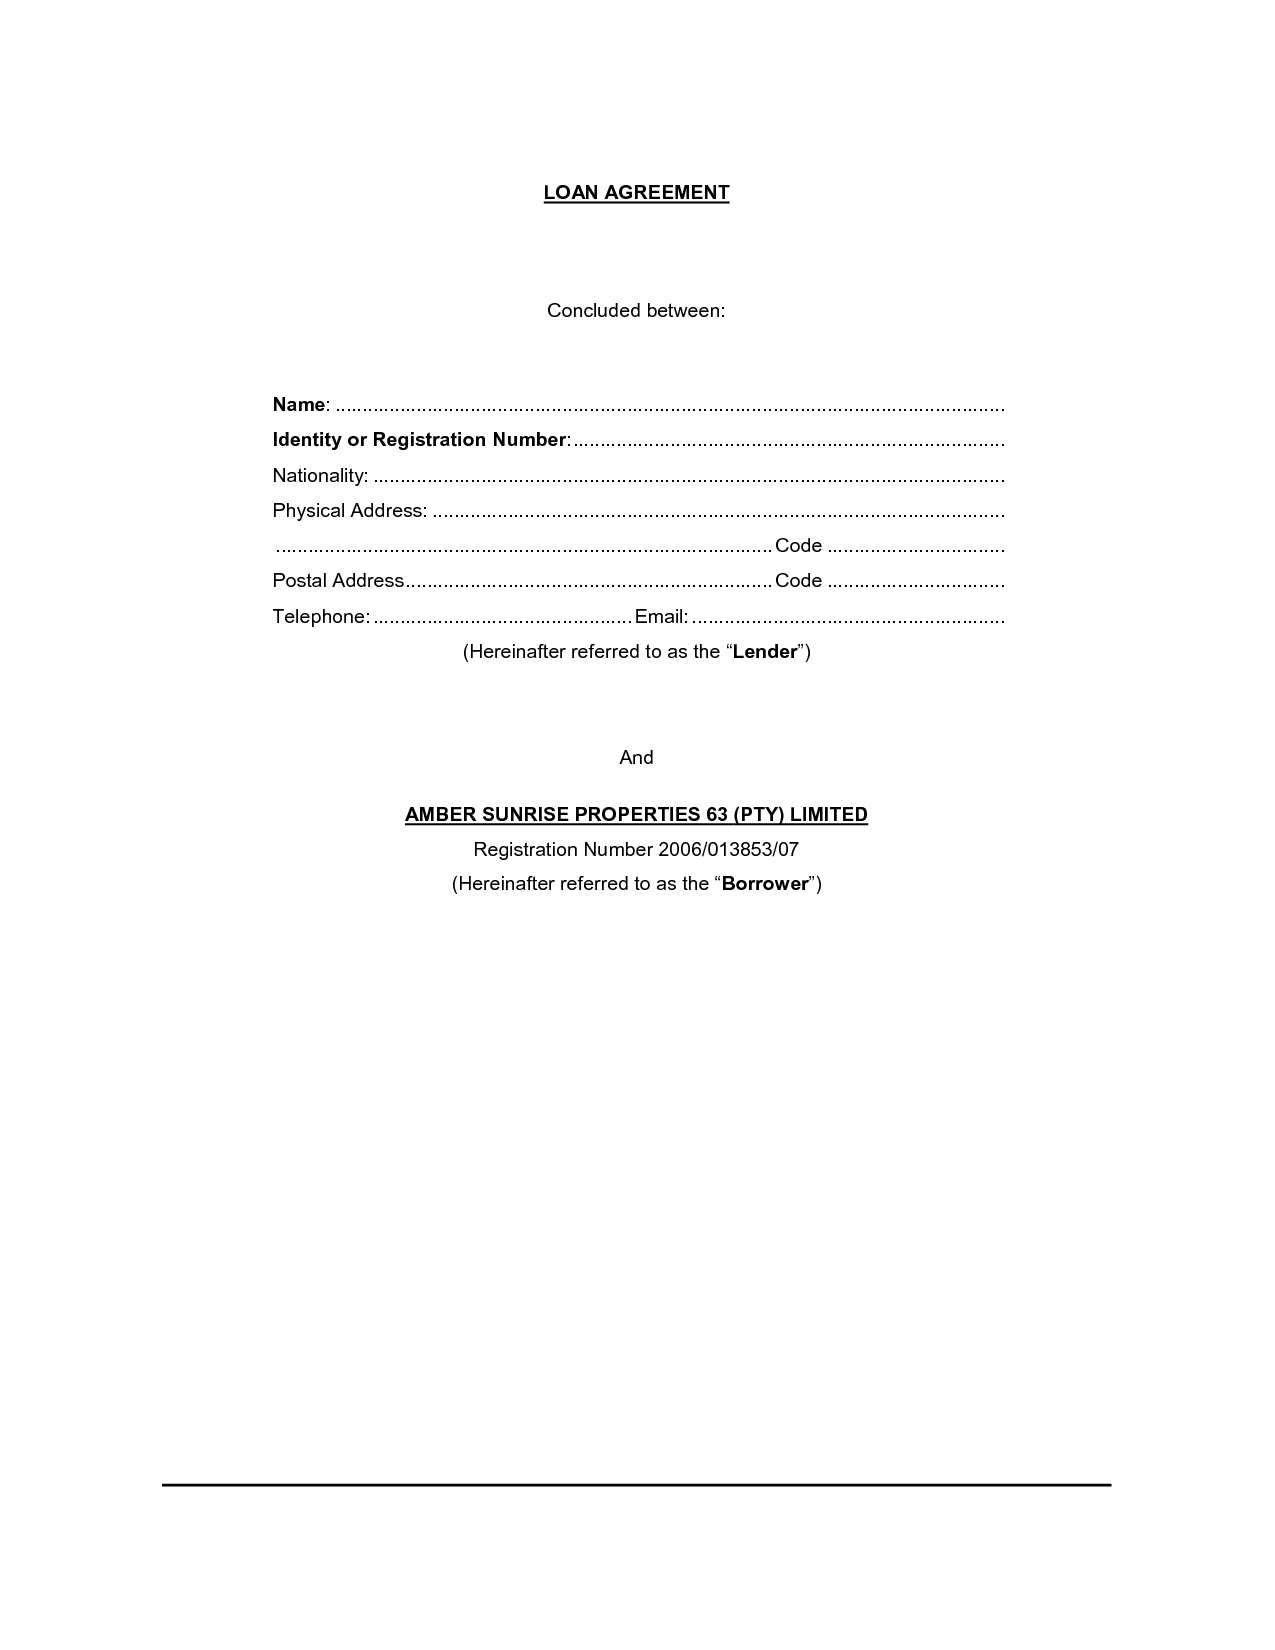 loanagreementtemplatefree simple loan contract – Agreement Letter for Loan